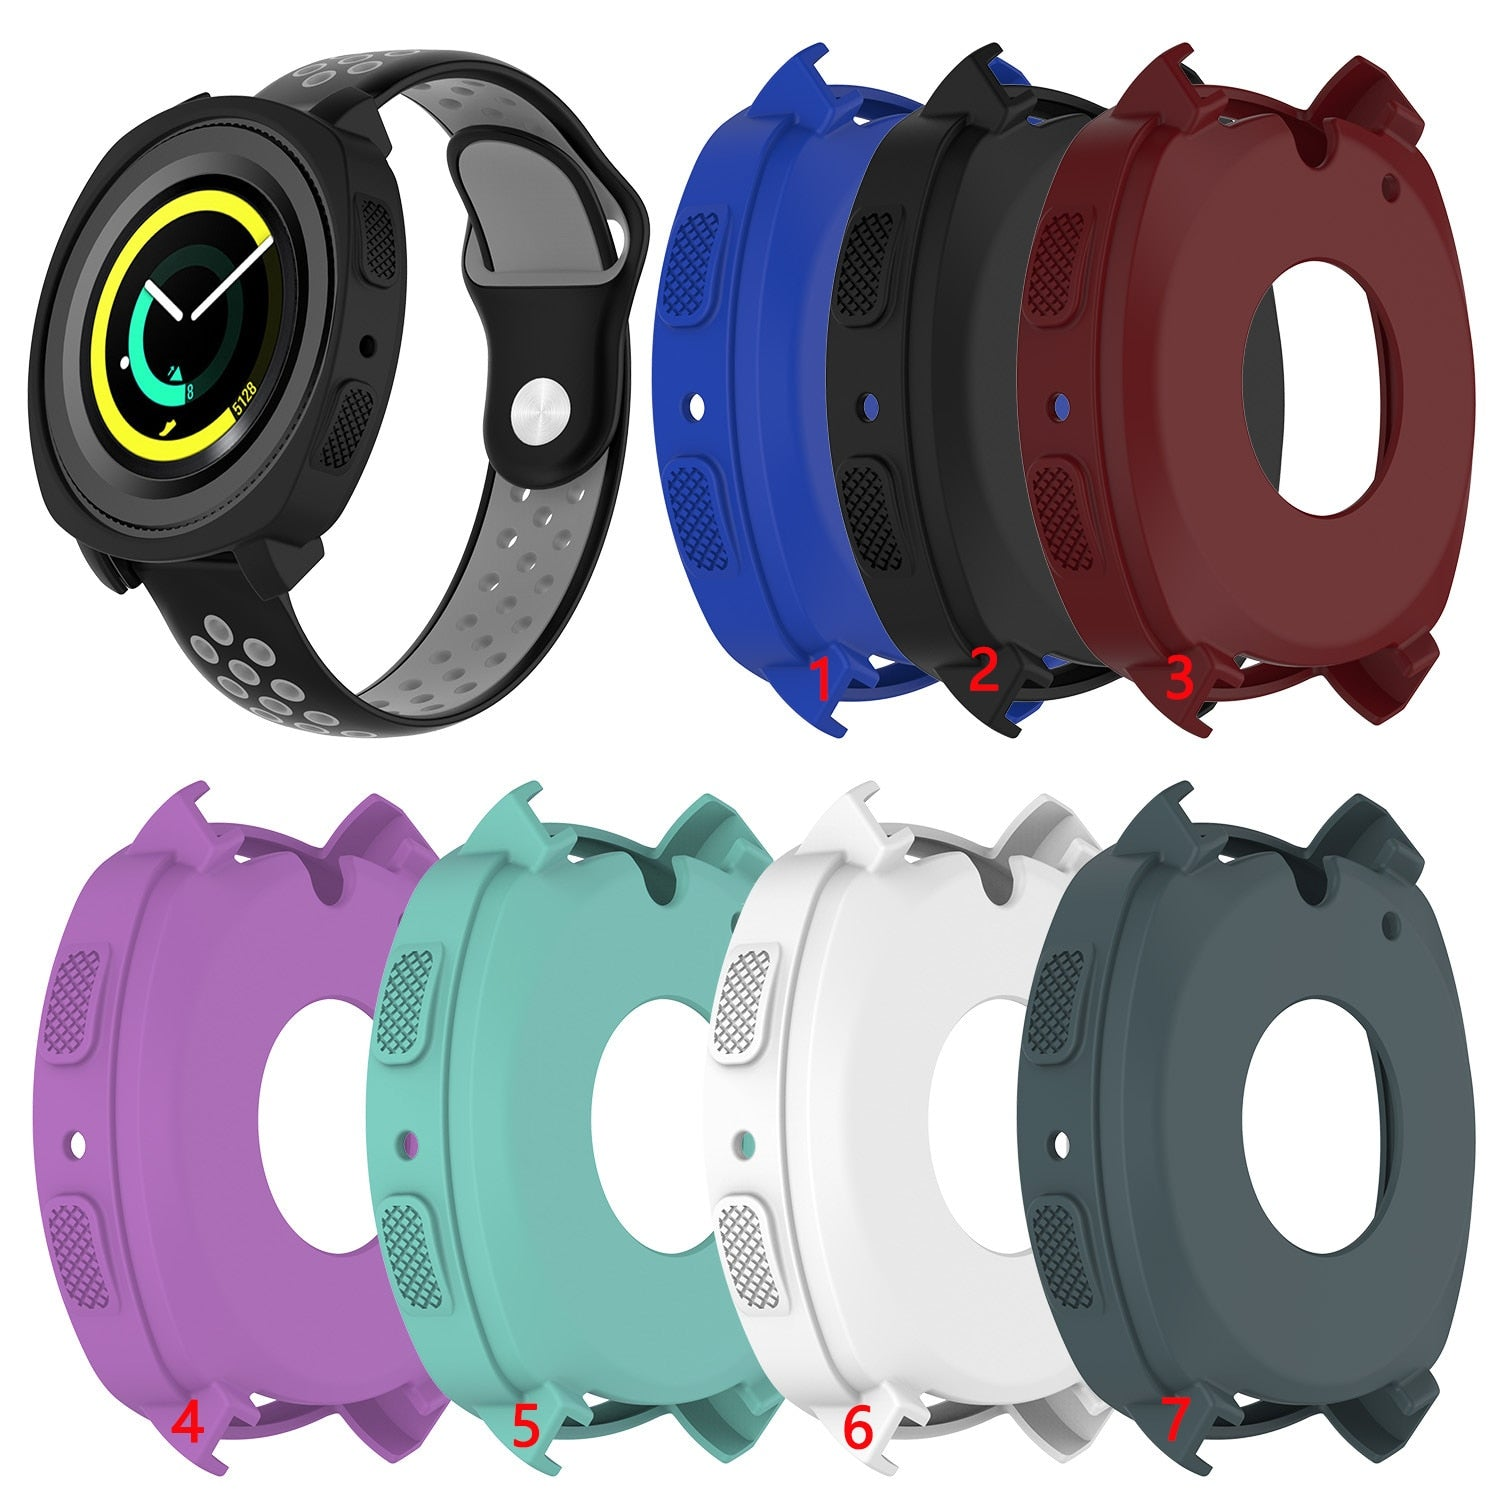 Fashion Soft Silicone Protector Case Cover for Samsung Gear Sport R600 Corlorful Replacement Watch Protective case shell Frame